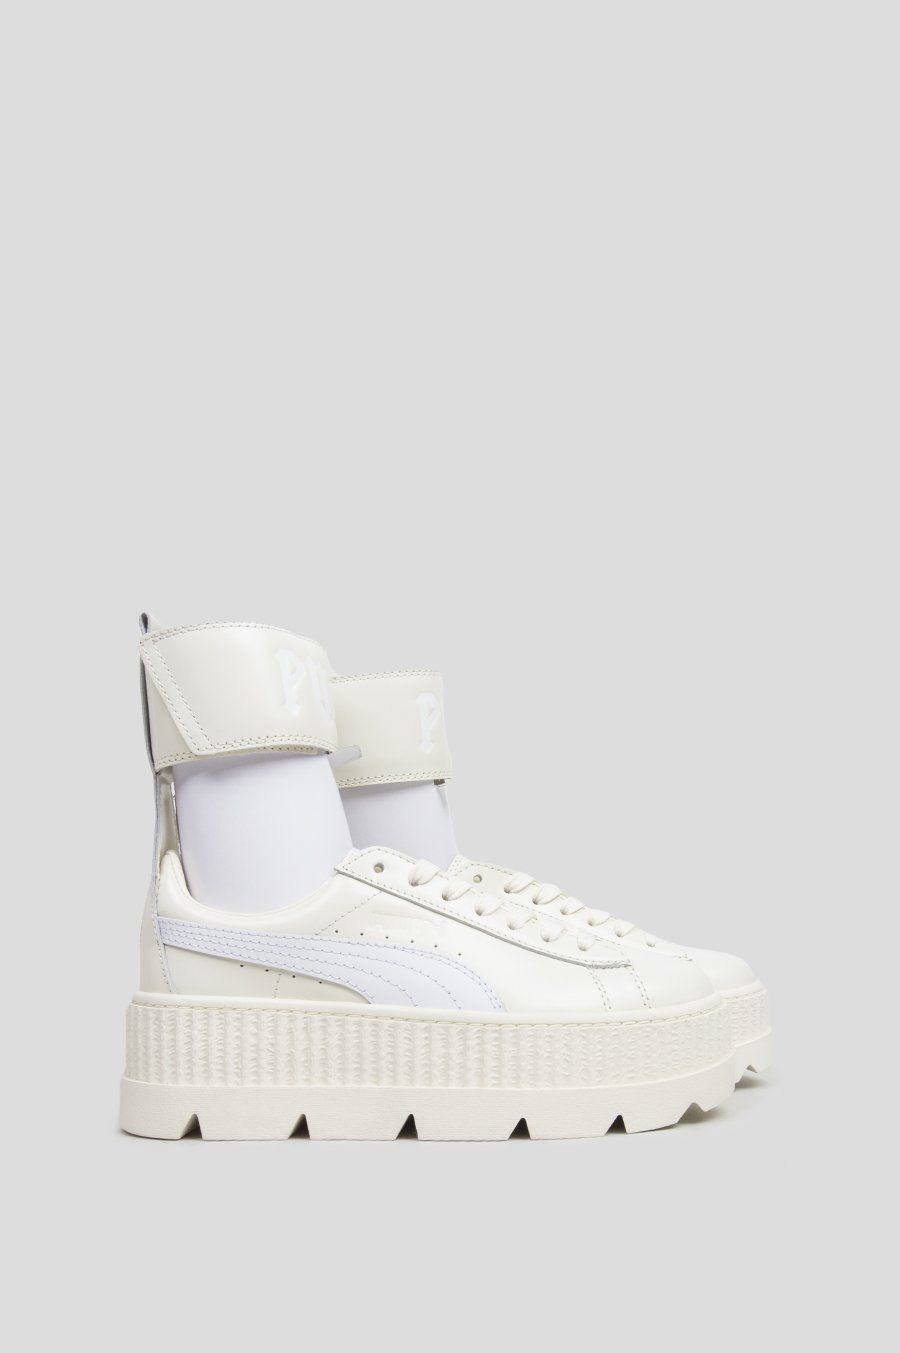 70fa6d2d05fac PUMA BY RIHANNA WOMENS ANKLE STRAP SNEAKER VANILLA ICE WHITE Ankle Straps